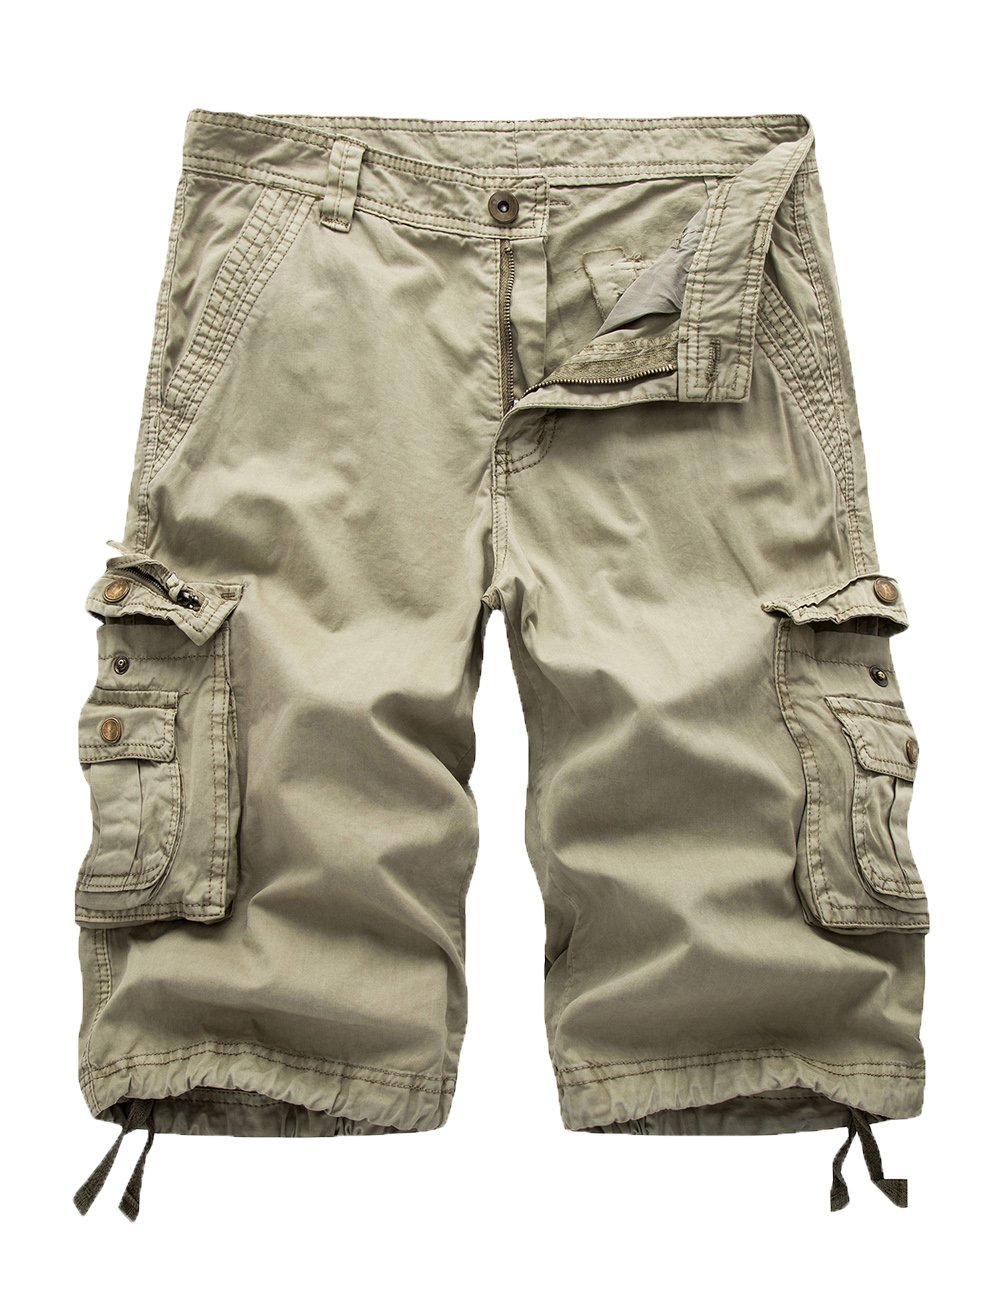 FOURSTEEDS Women's Cotton Butt Lift Zipper Multi-Pockets Twill Bermuda Drawstring Women Cargo Shorts Khaki US 10